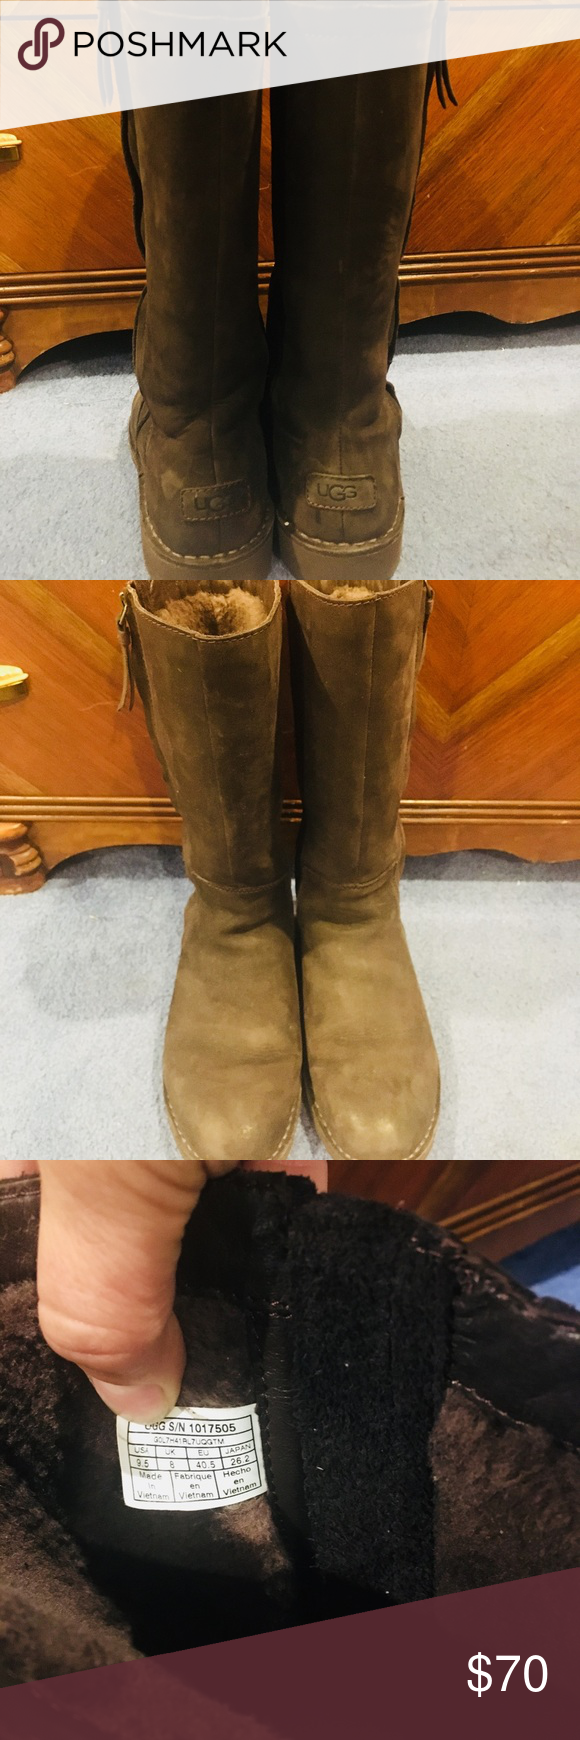 b4aaf21b8f6 Ugg Elly boot In chocolate. excellent condition Beautiful chocolate ...